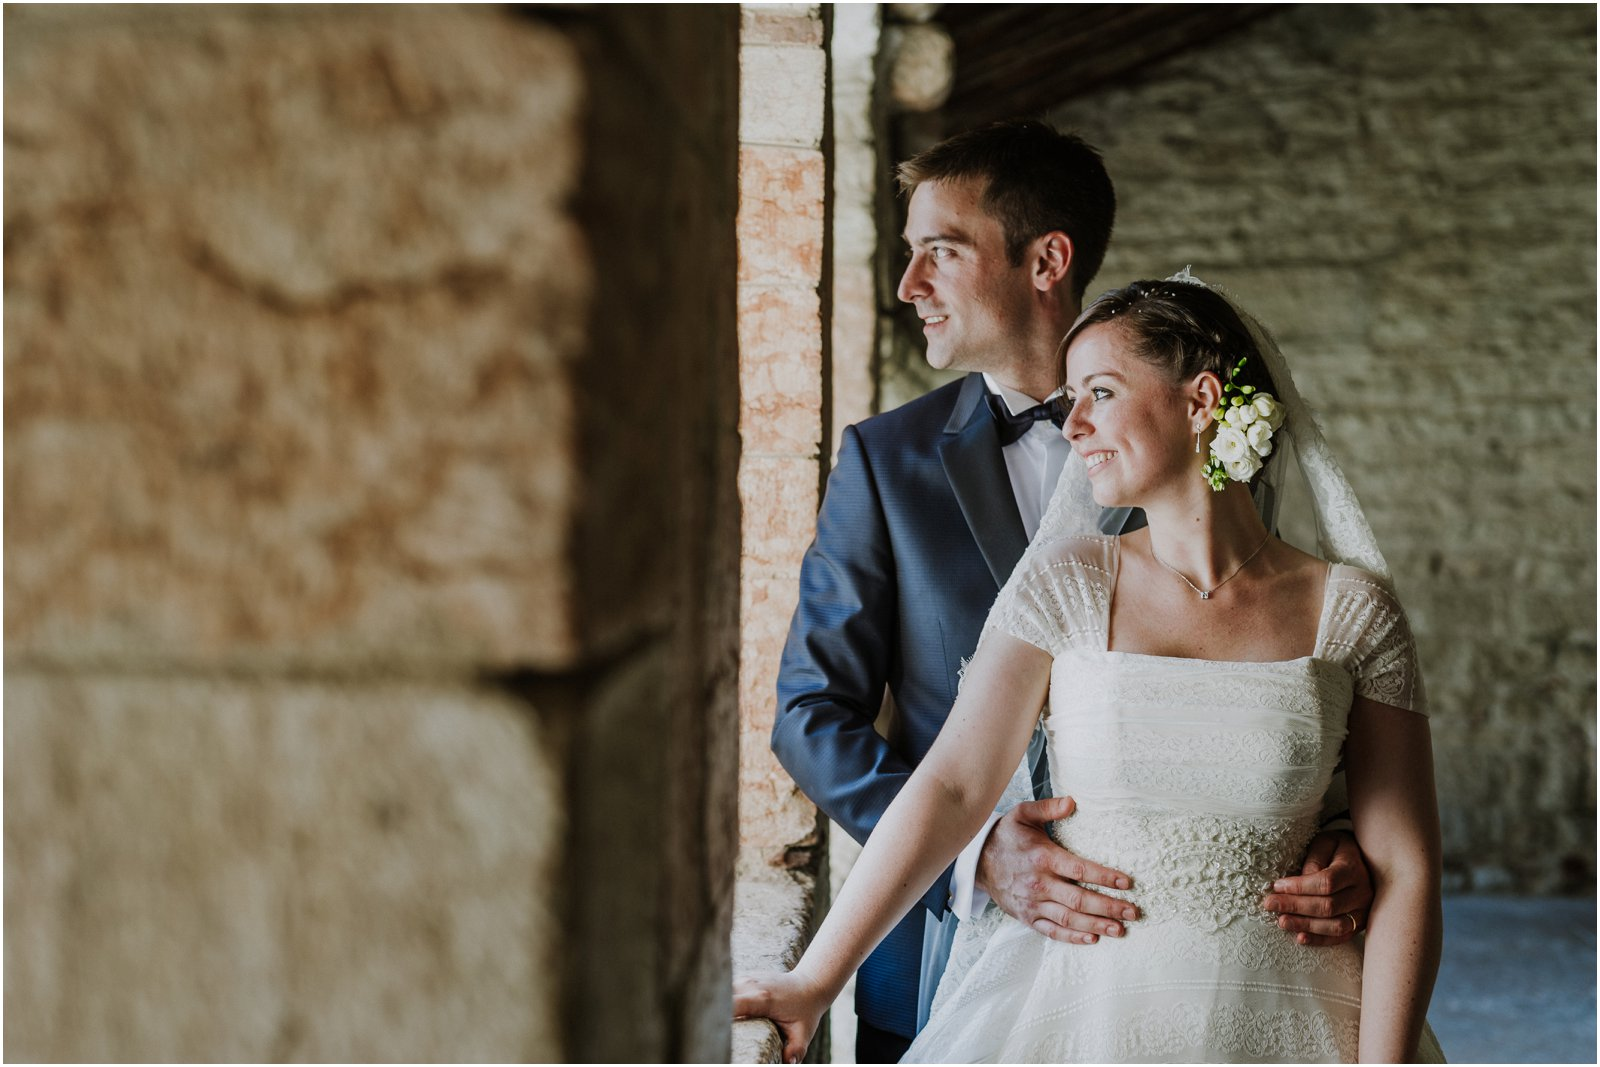 veronasposi foto e video matrimonio verona_0572